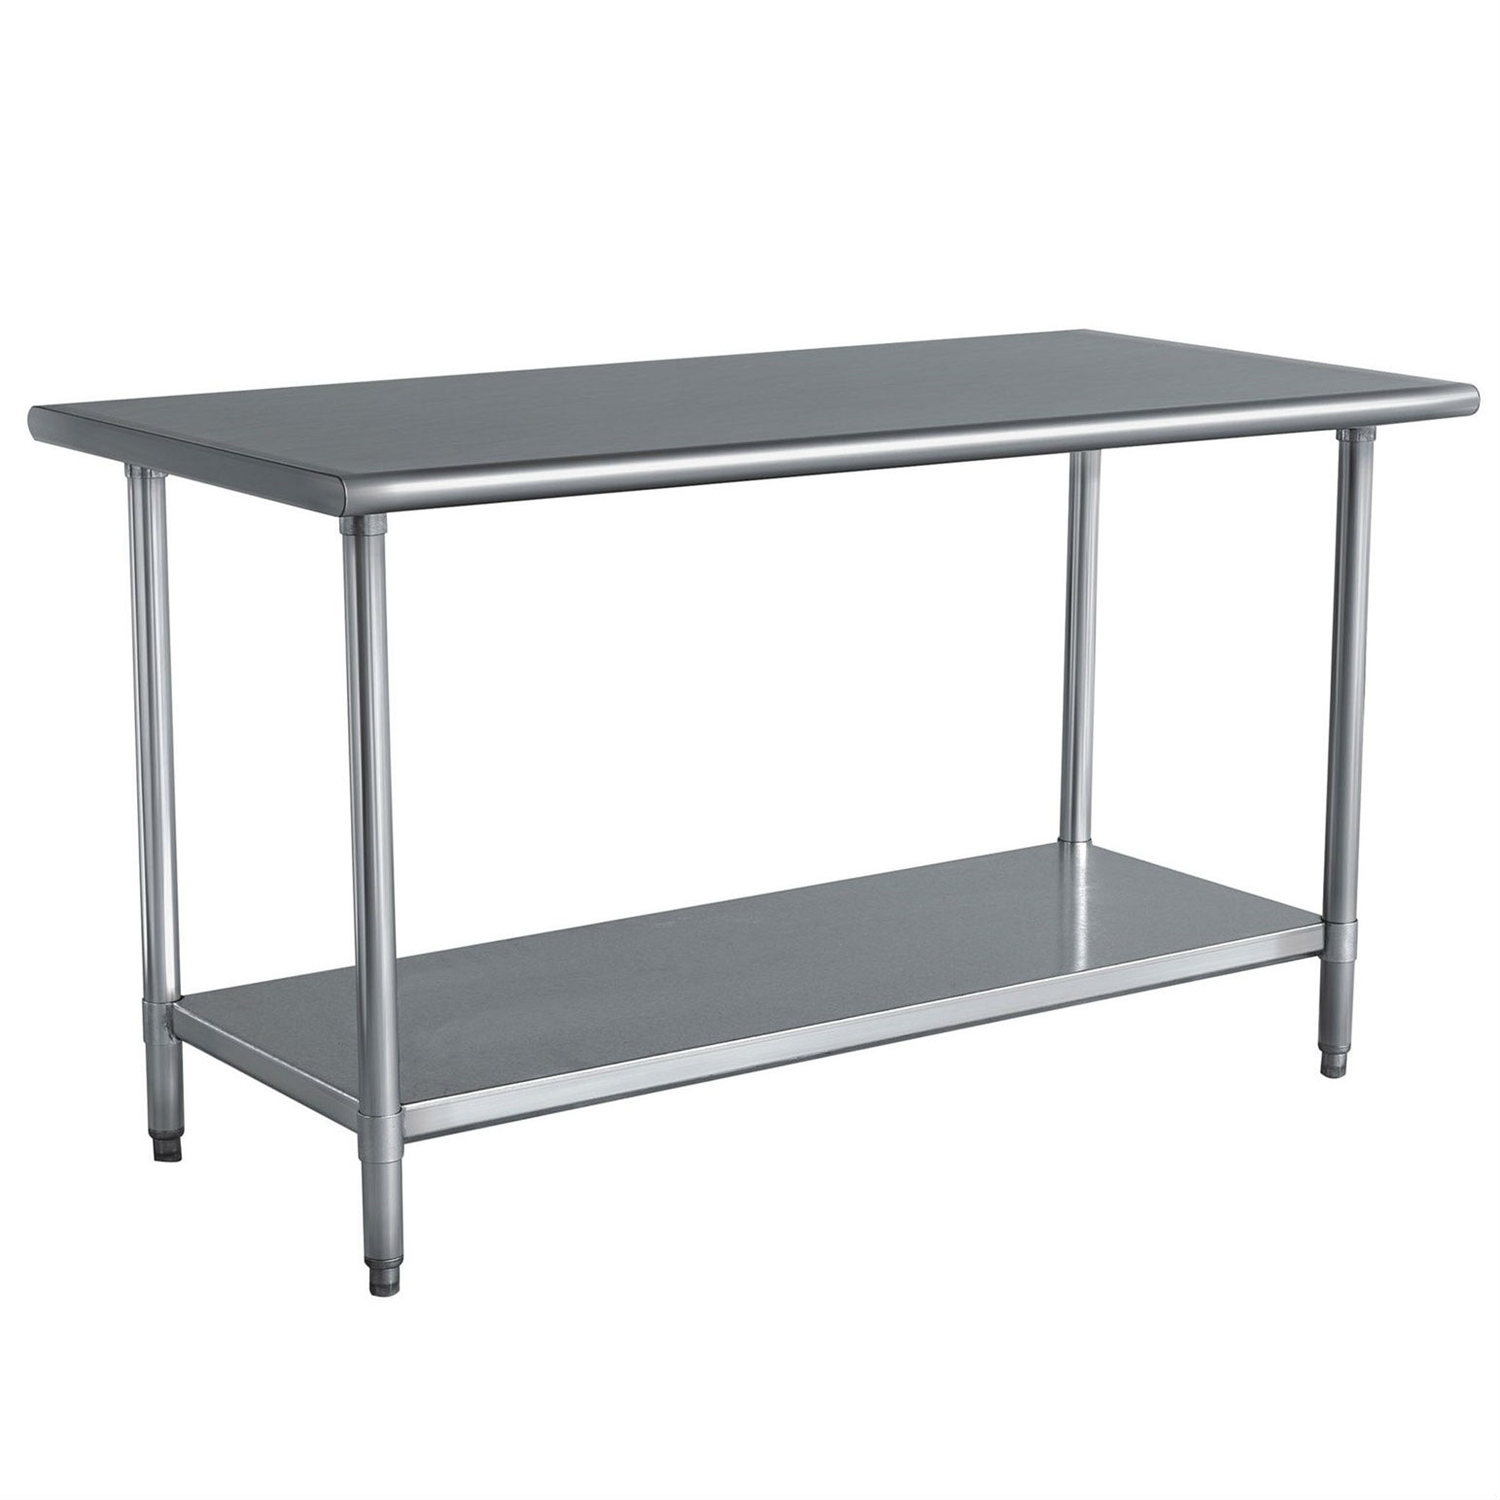 shw kitchen prep tables Stainless Steel Top Utility Table High Top Workbench Prep Table